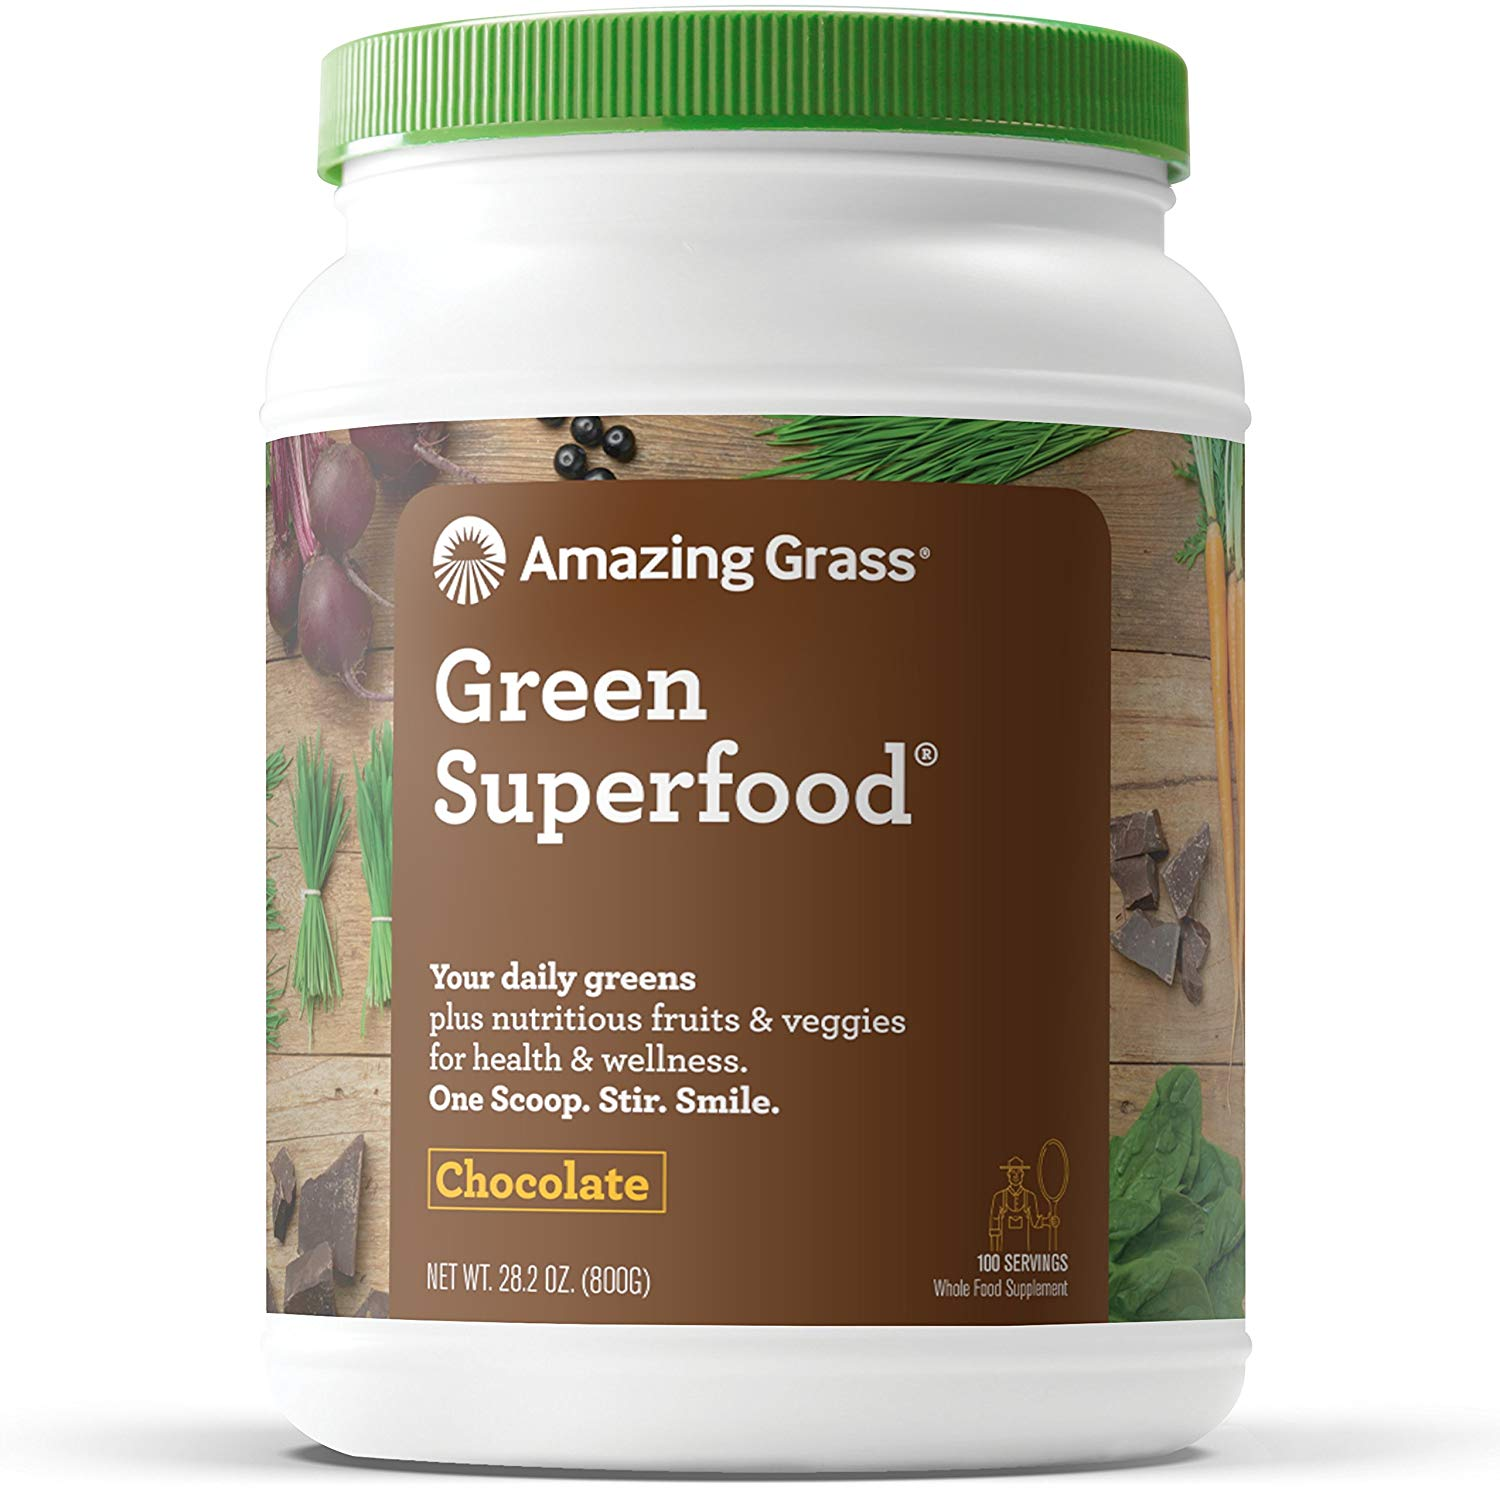 Amazing Grass Green Superfood Powder, Chocolate, 100 Servings